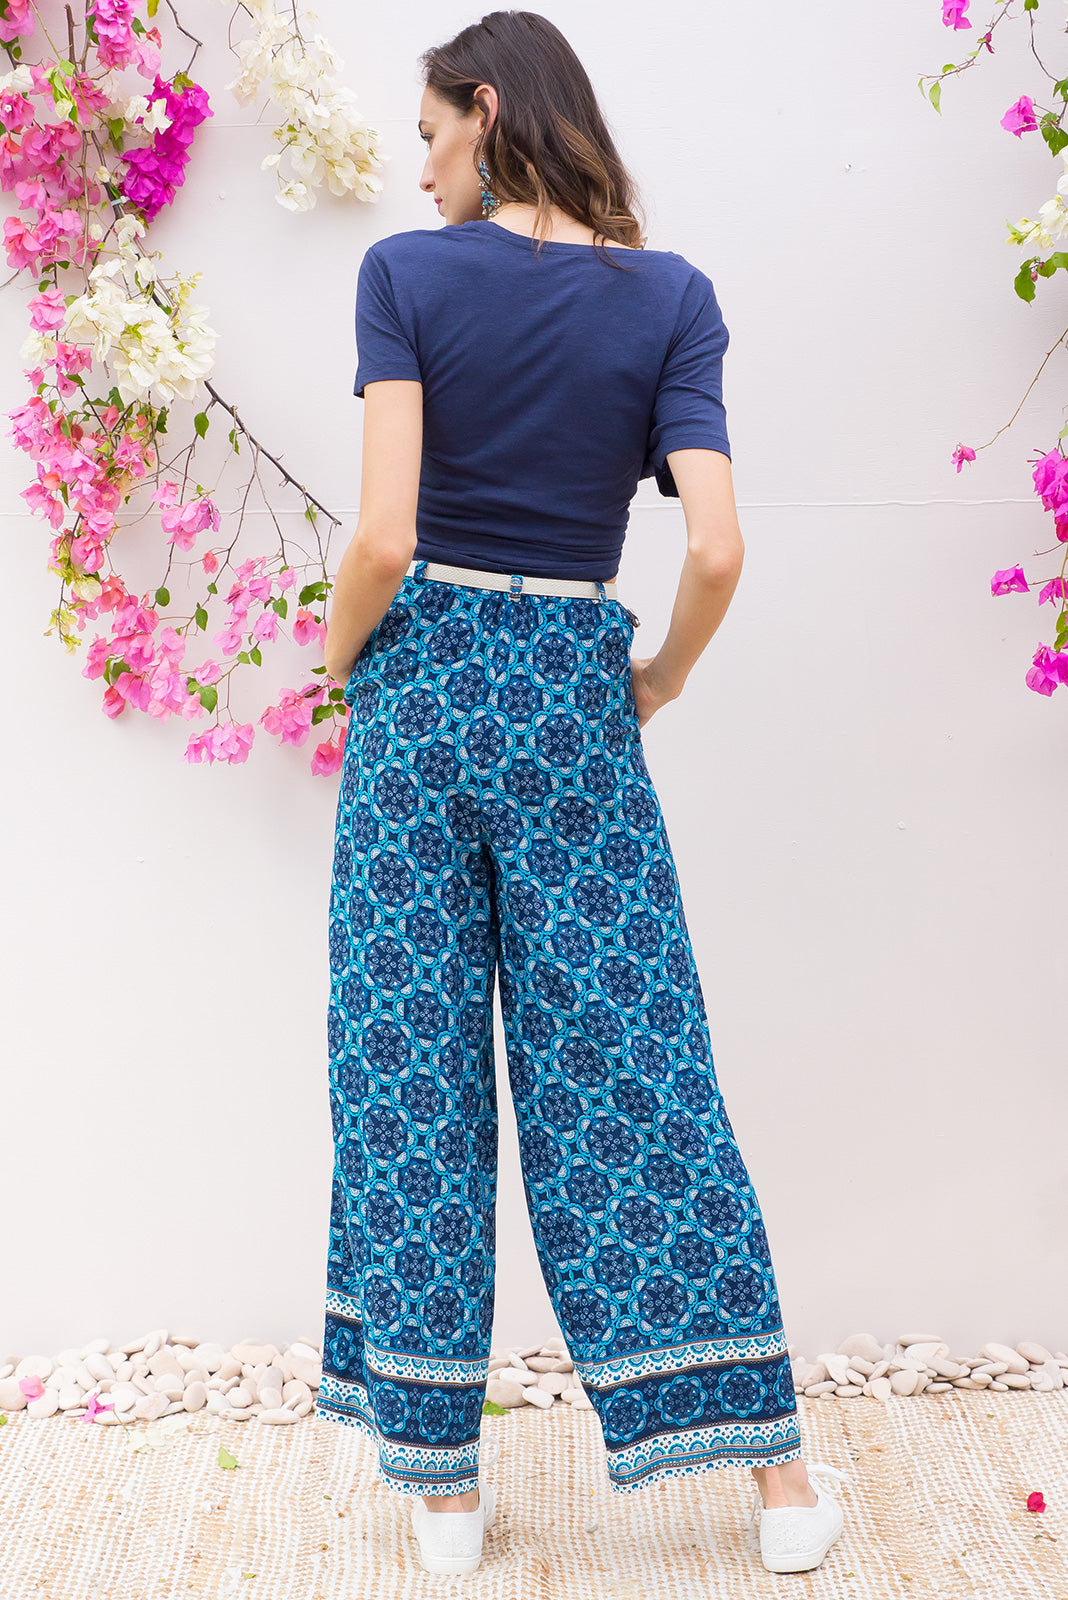 Traveller Pants Blue Bayou feature an elastic waistband, wide leg, relaxed fit in a gorgeous royal blue and turquoise eastern inspired boho border print on soft woven rayon